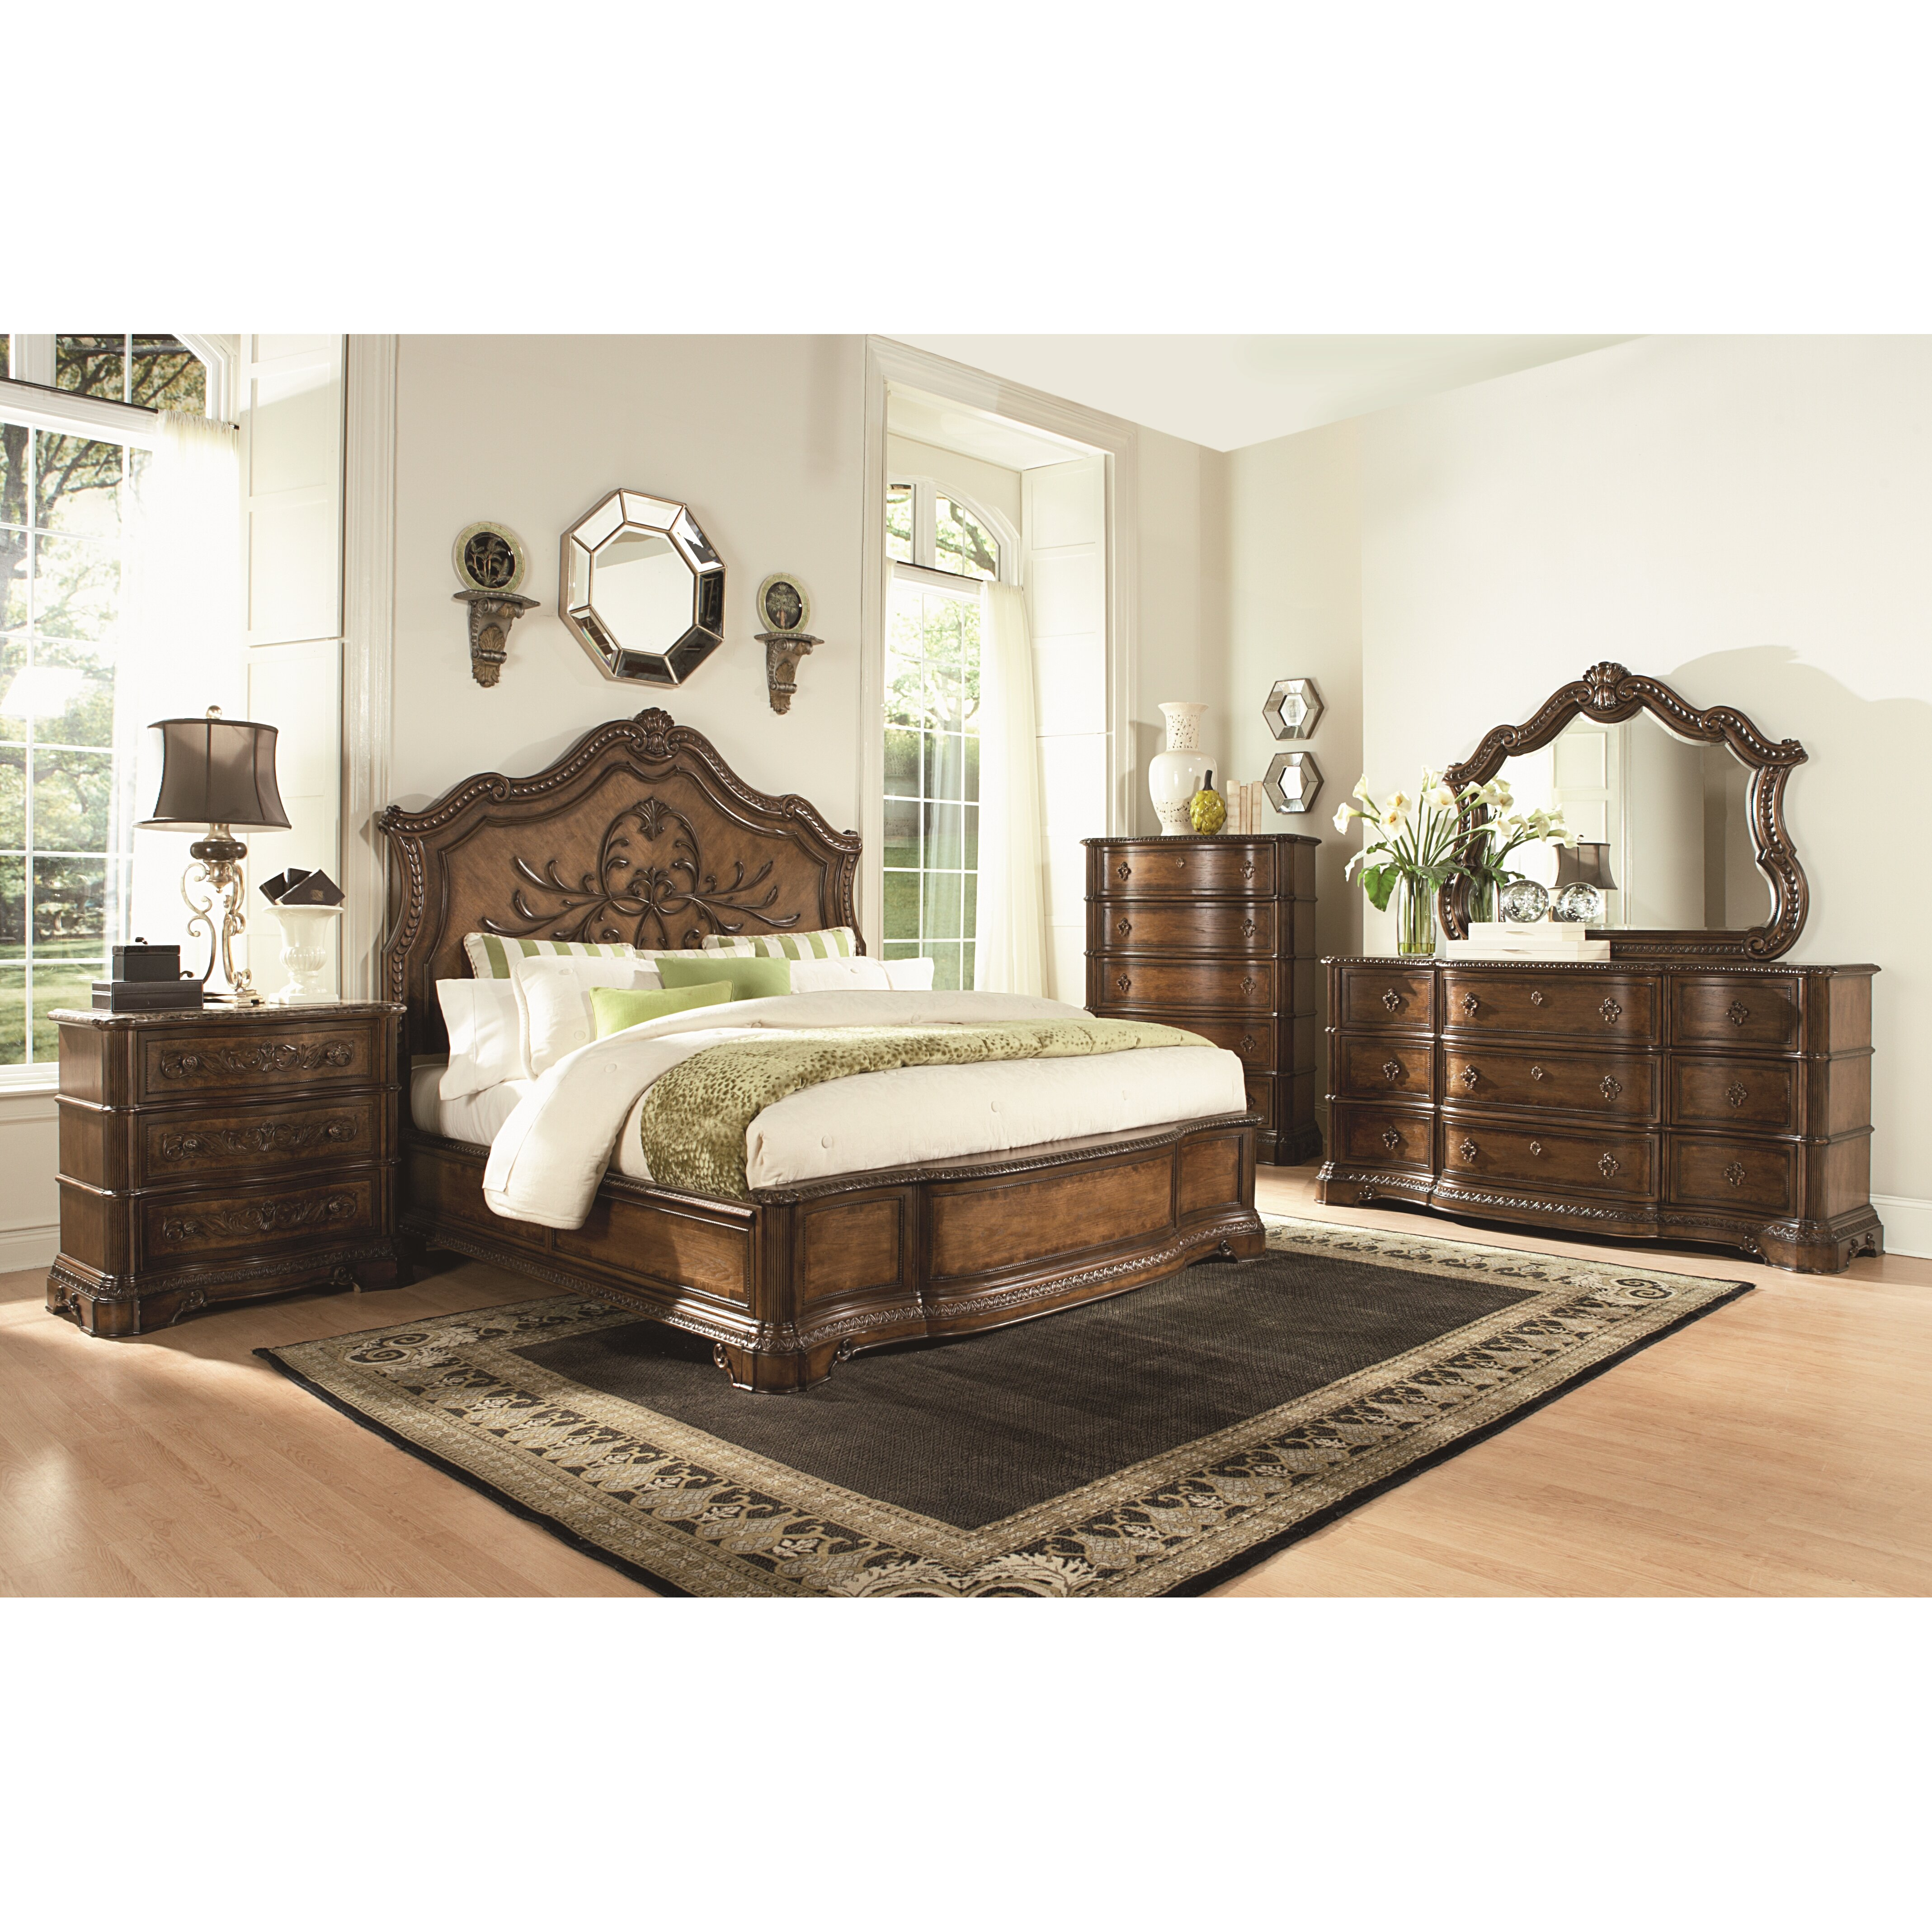 Bedroom Furniture Pictures: Legacy Classic Furniture Pemberleigh Platform Customizable